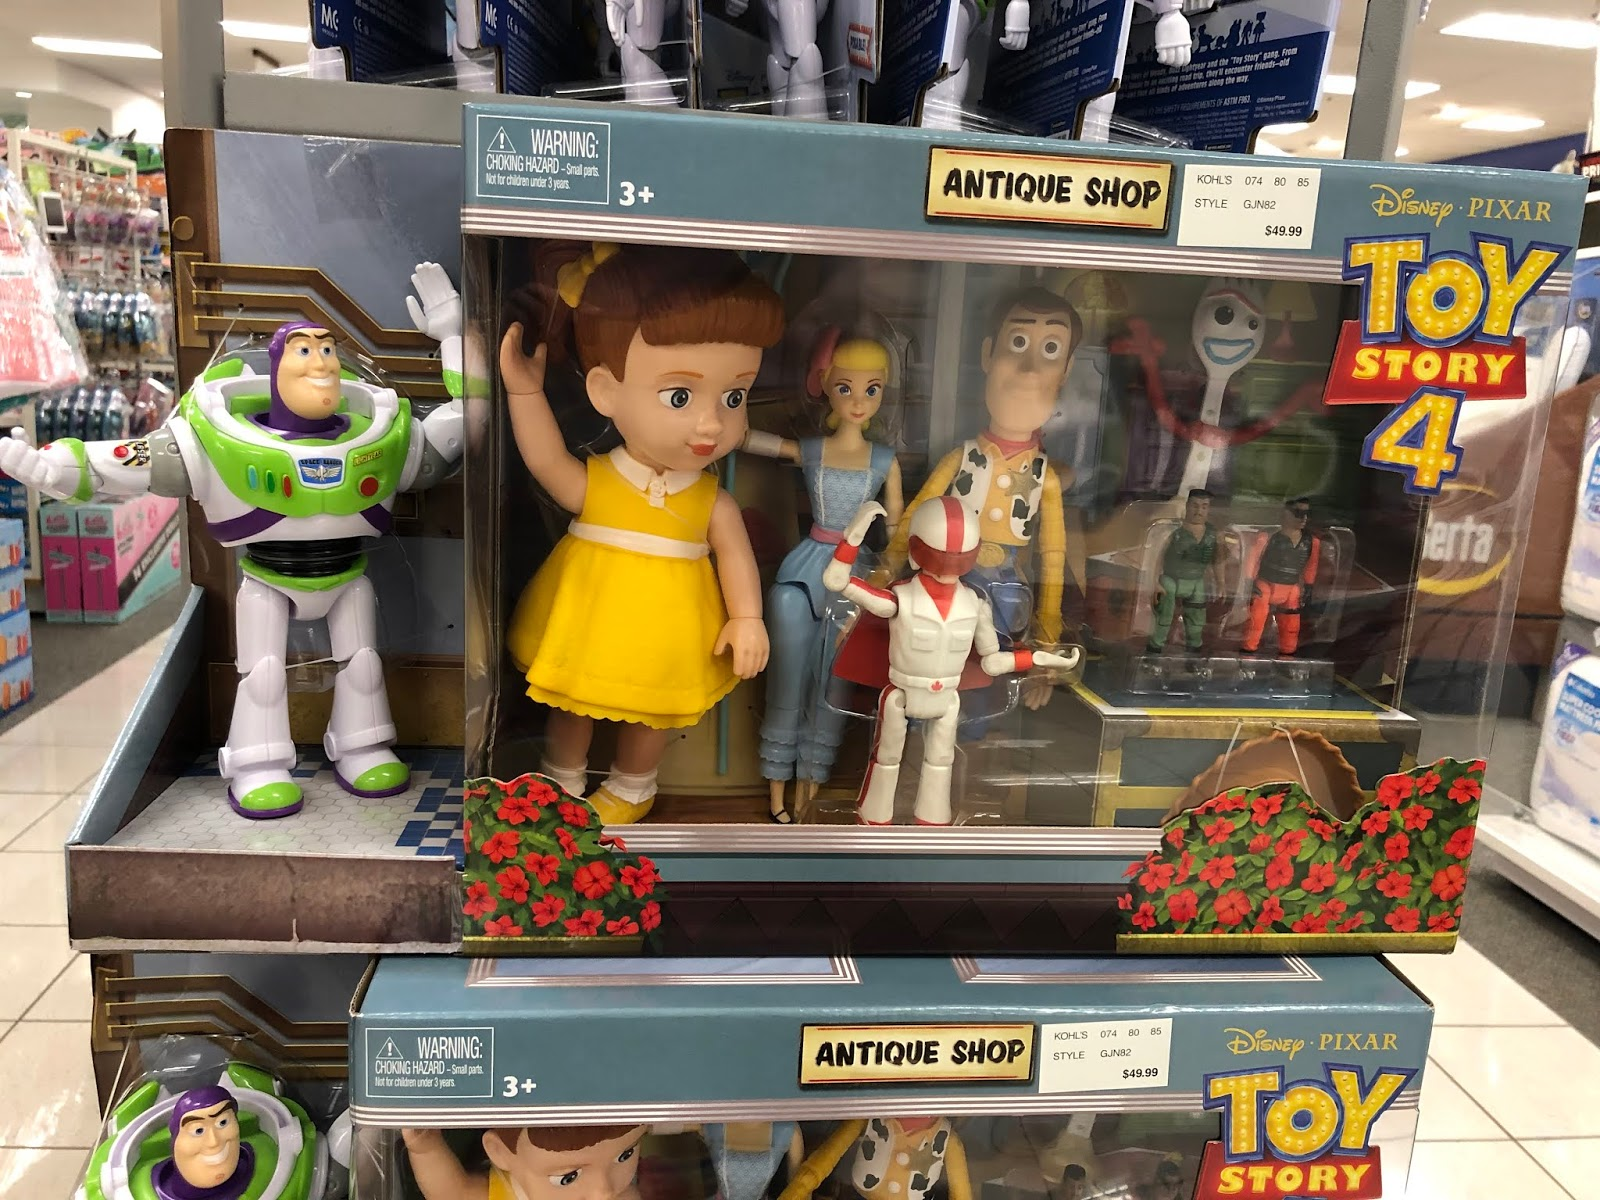 toy story 4 antique shop gift set